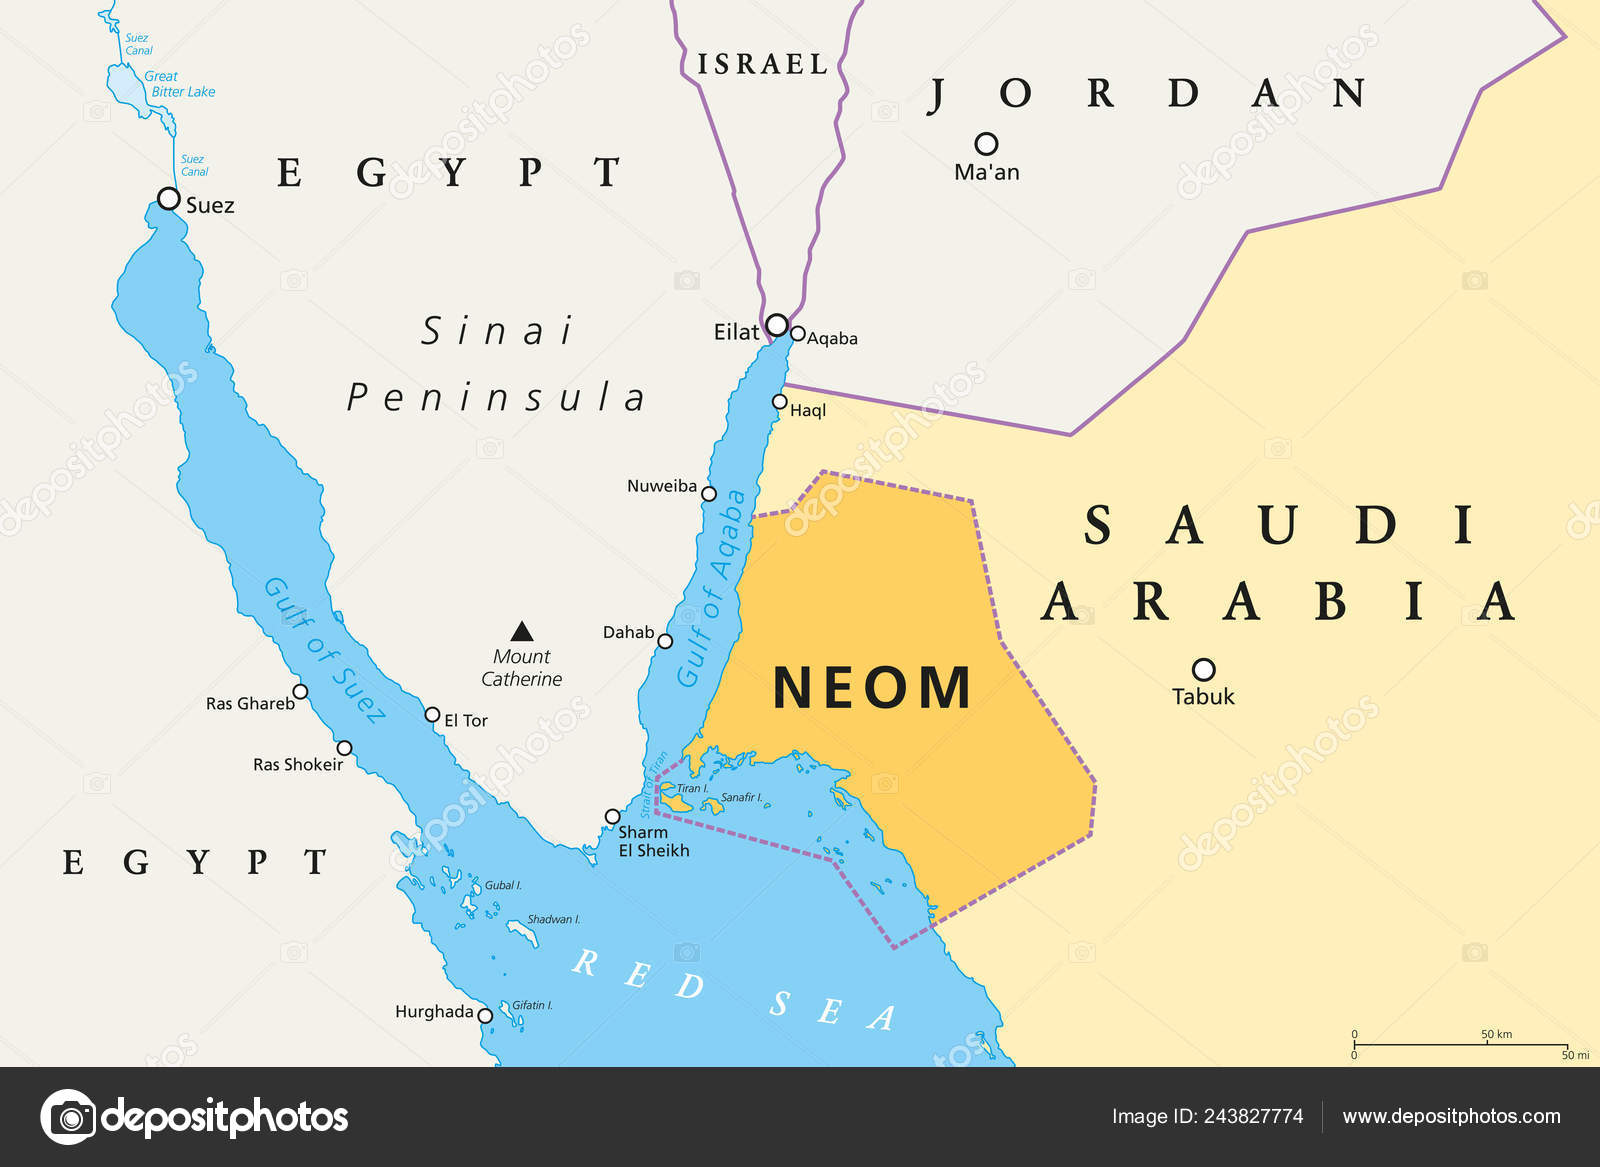 Neom Political Map 500 Billion Dollar Megacity Project Saudi Arabia